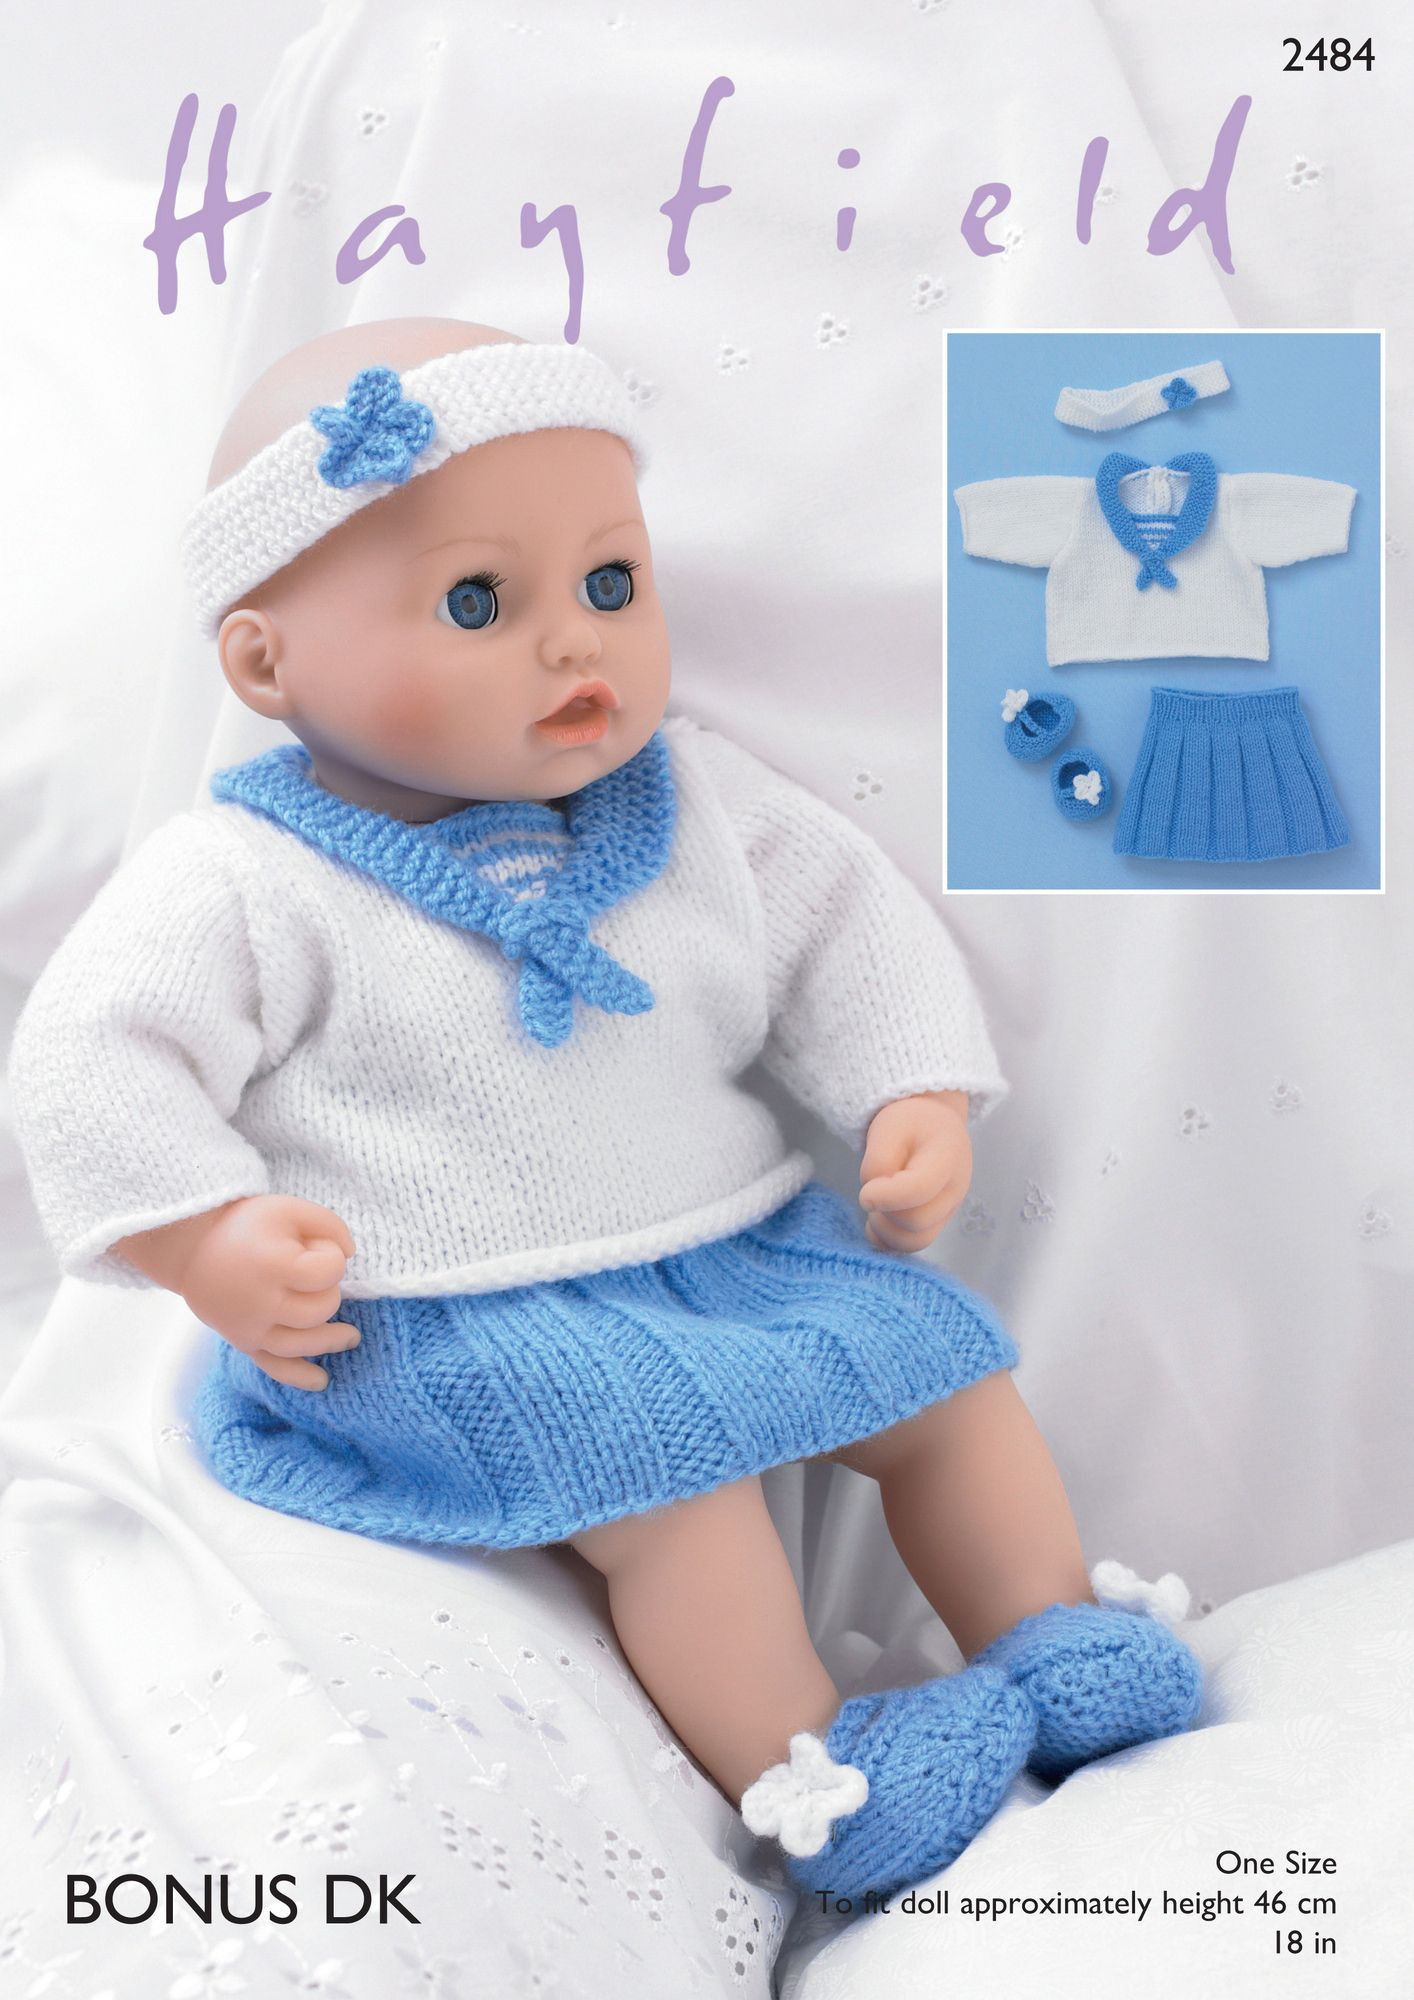 Pants Shoes and Headband! Bonus DK Pattern – 2484 Baby Dolls Sailor Top Skirt